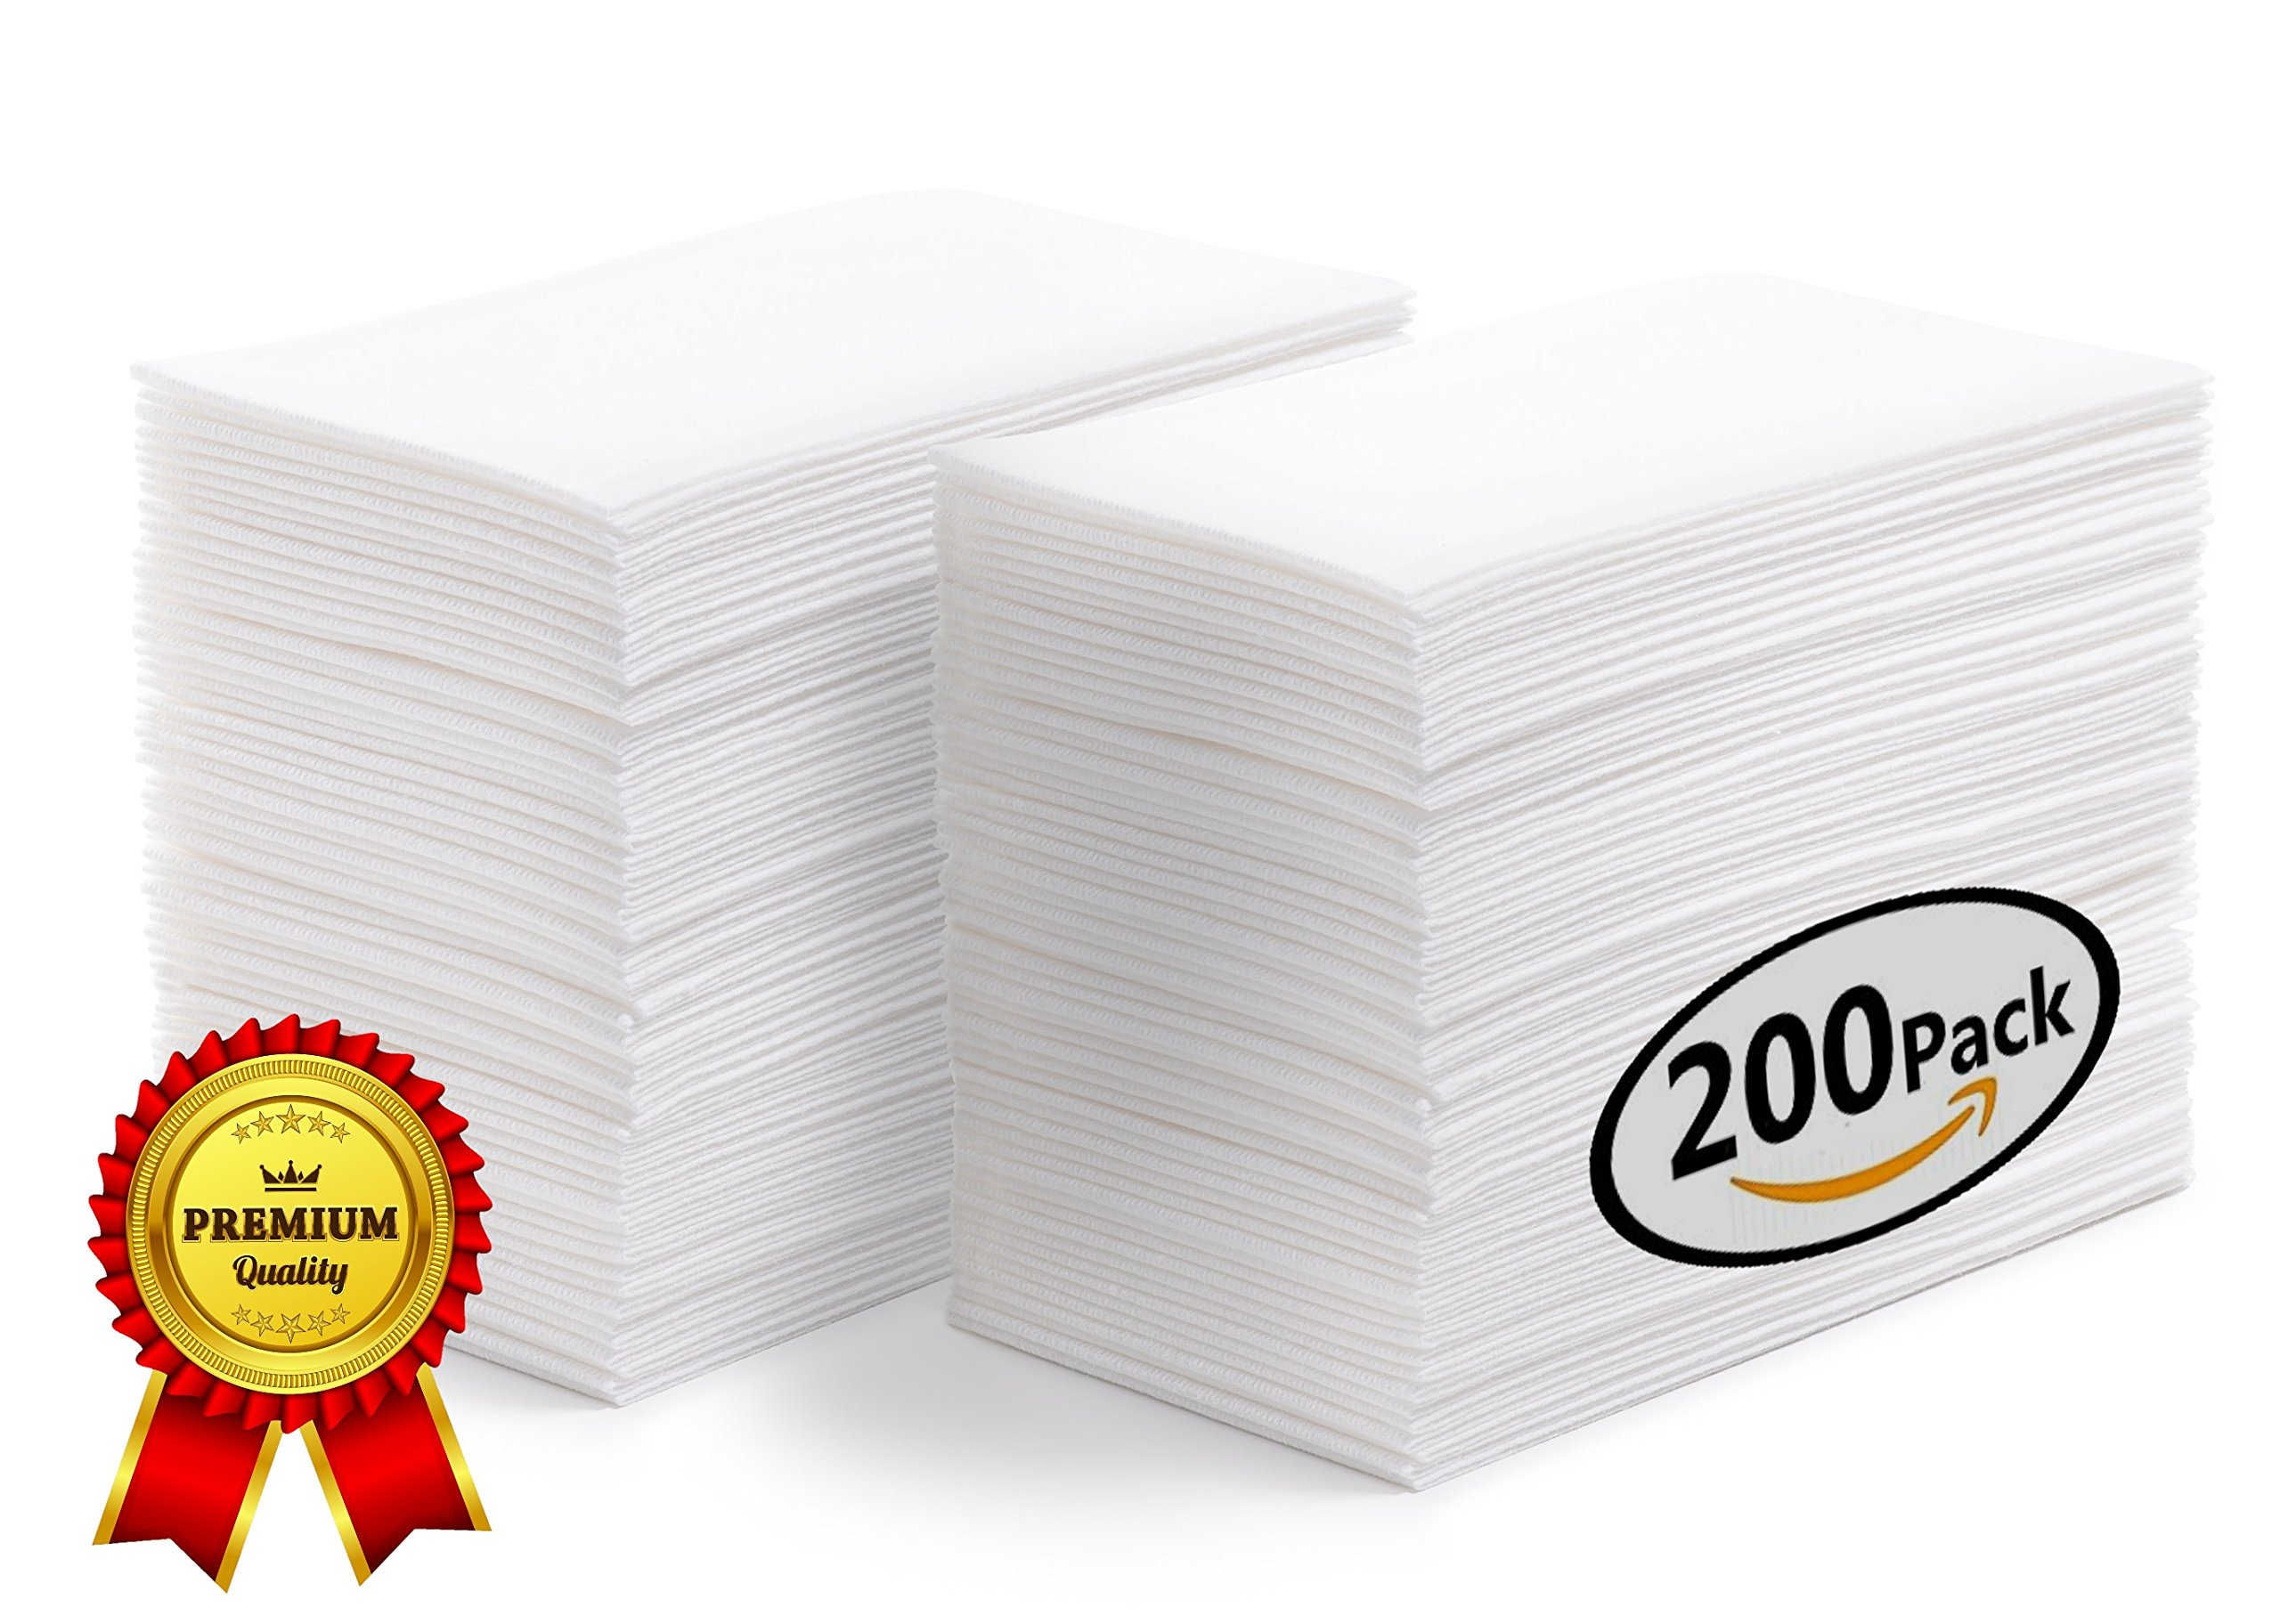 SOFTER Hand Towels | Guest Napkins | Disposable Dinner Napkins | Linen Feel Wedding Guest Towels White - Absorbent - Durable - Paper Hand Towels For Events Bathroom Kitchen Office 200 BULK VALUE PK